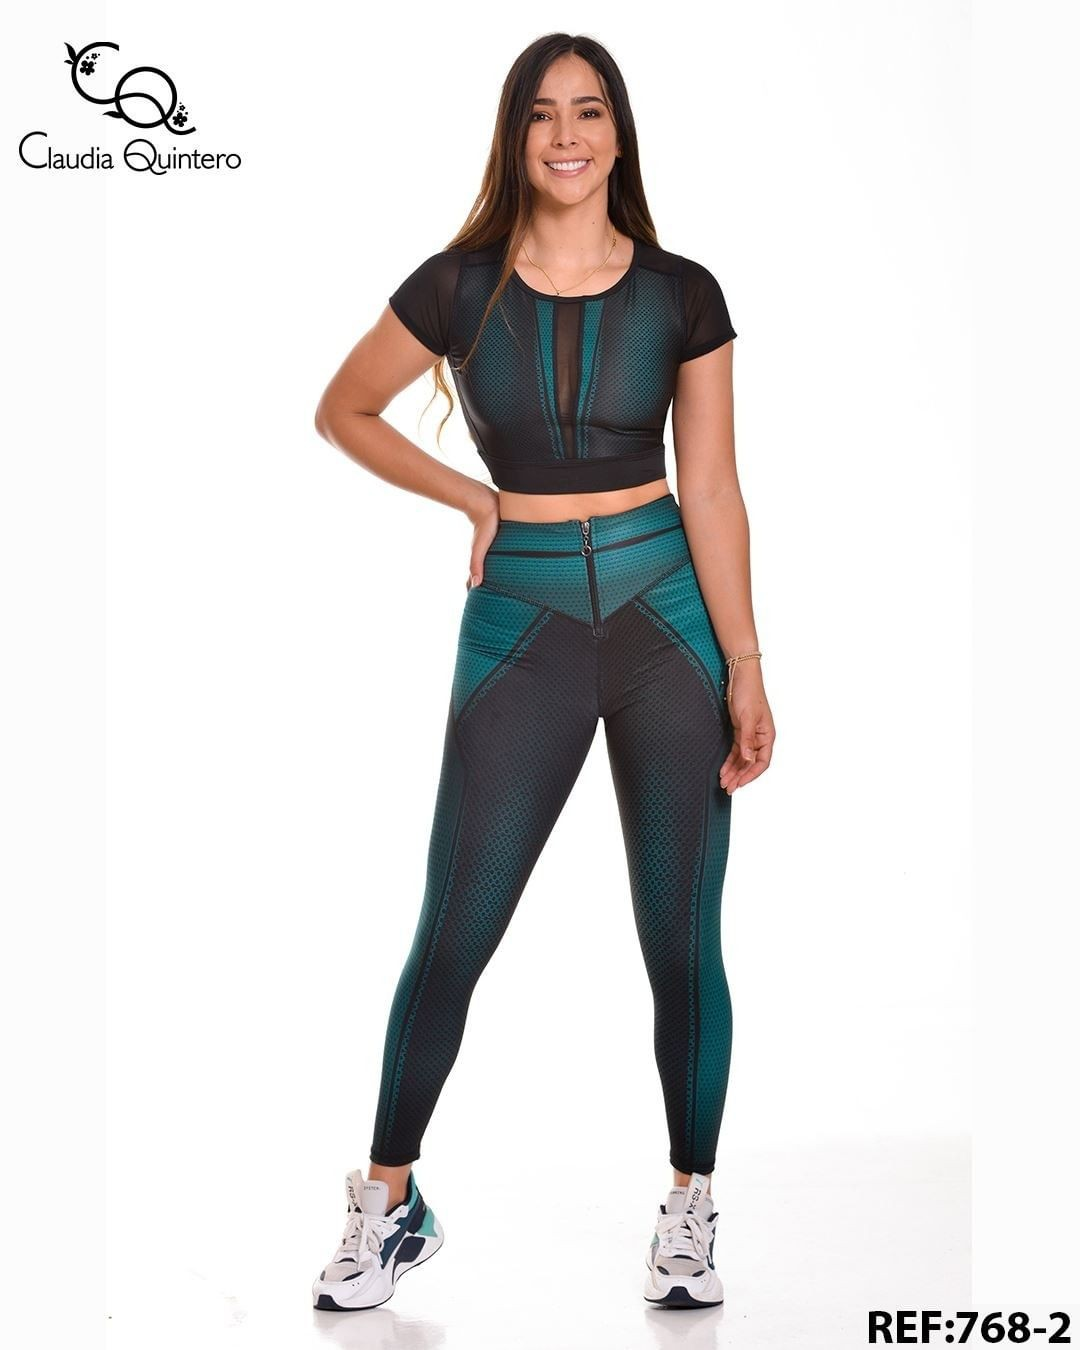 Electric blue and turquoise sportswear, leggings, tights